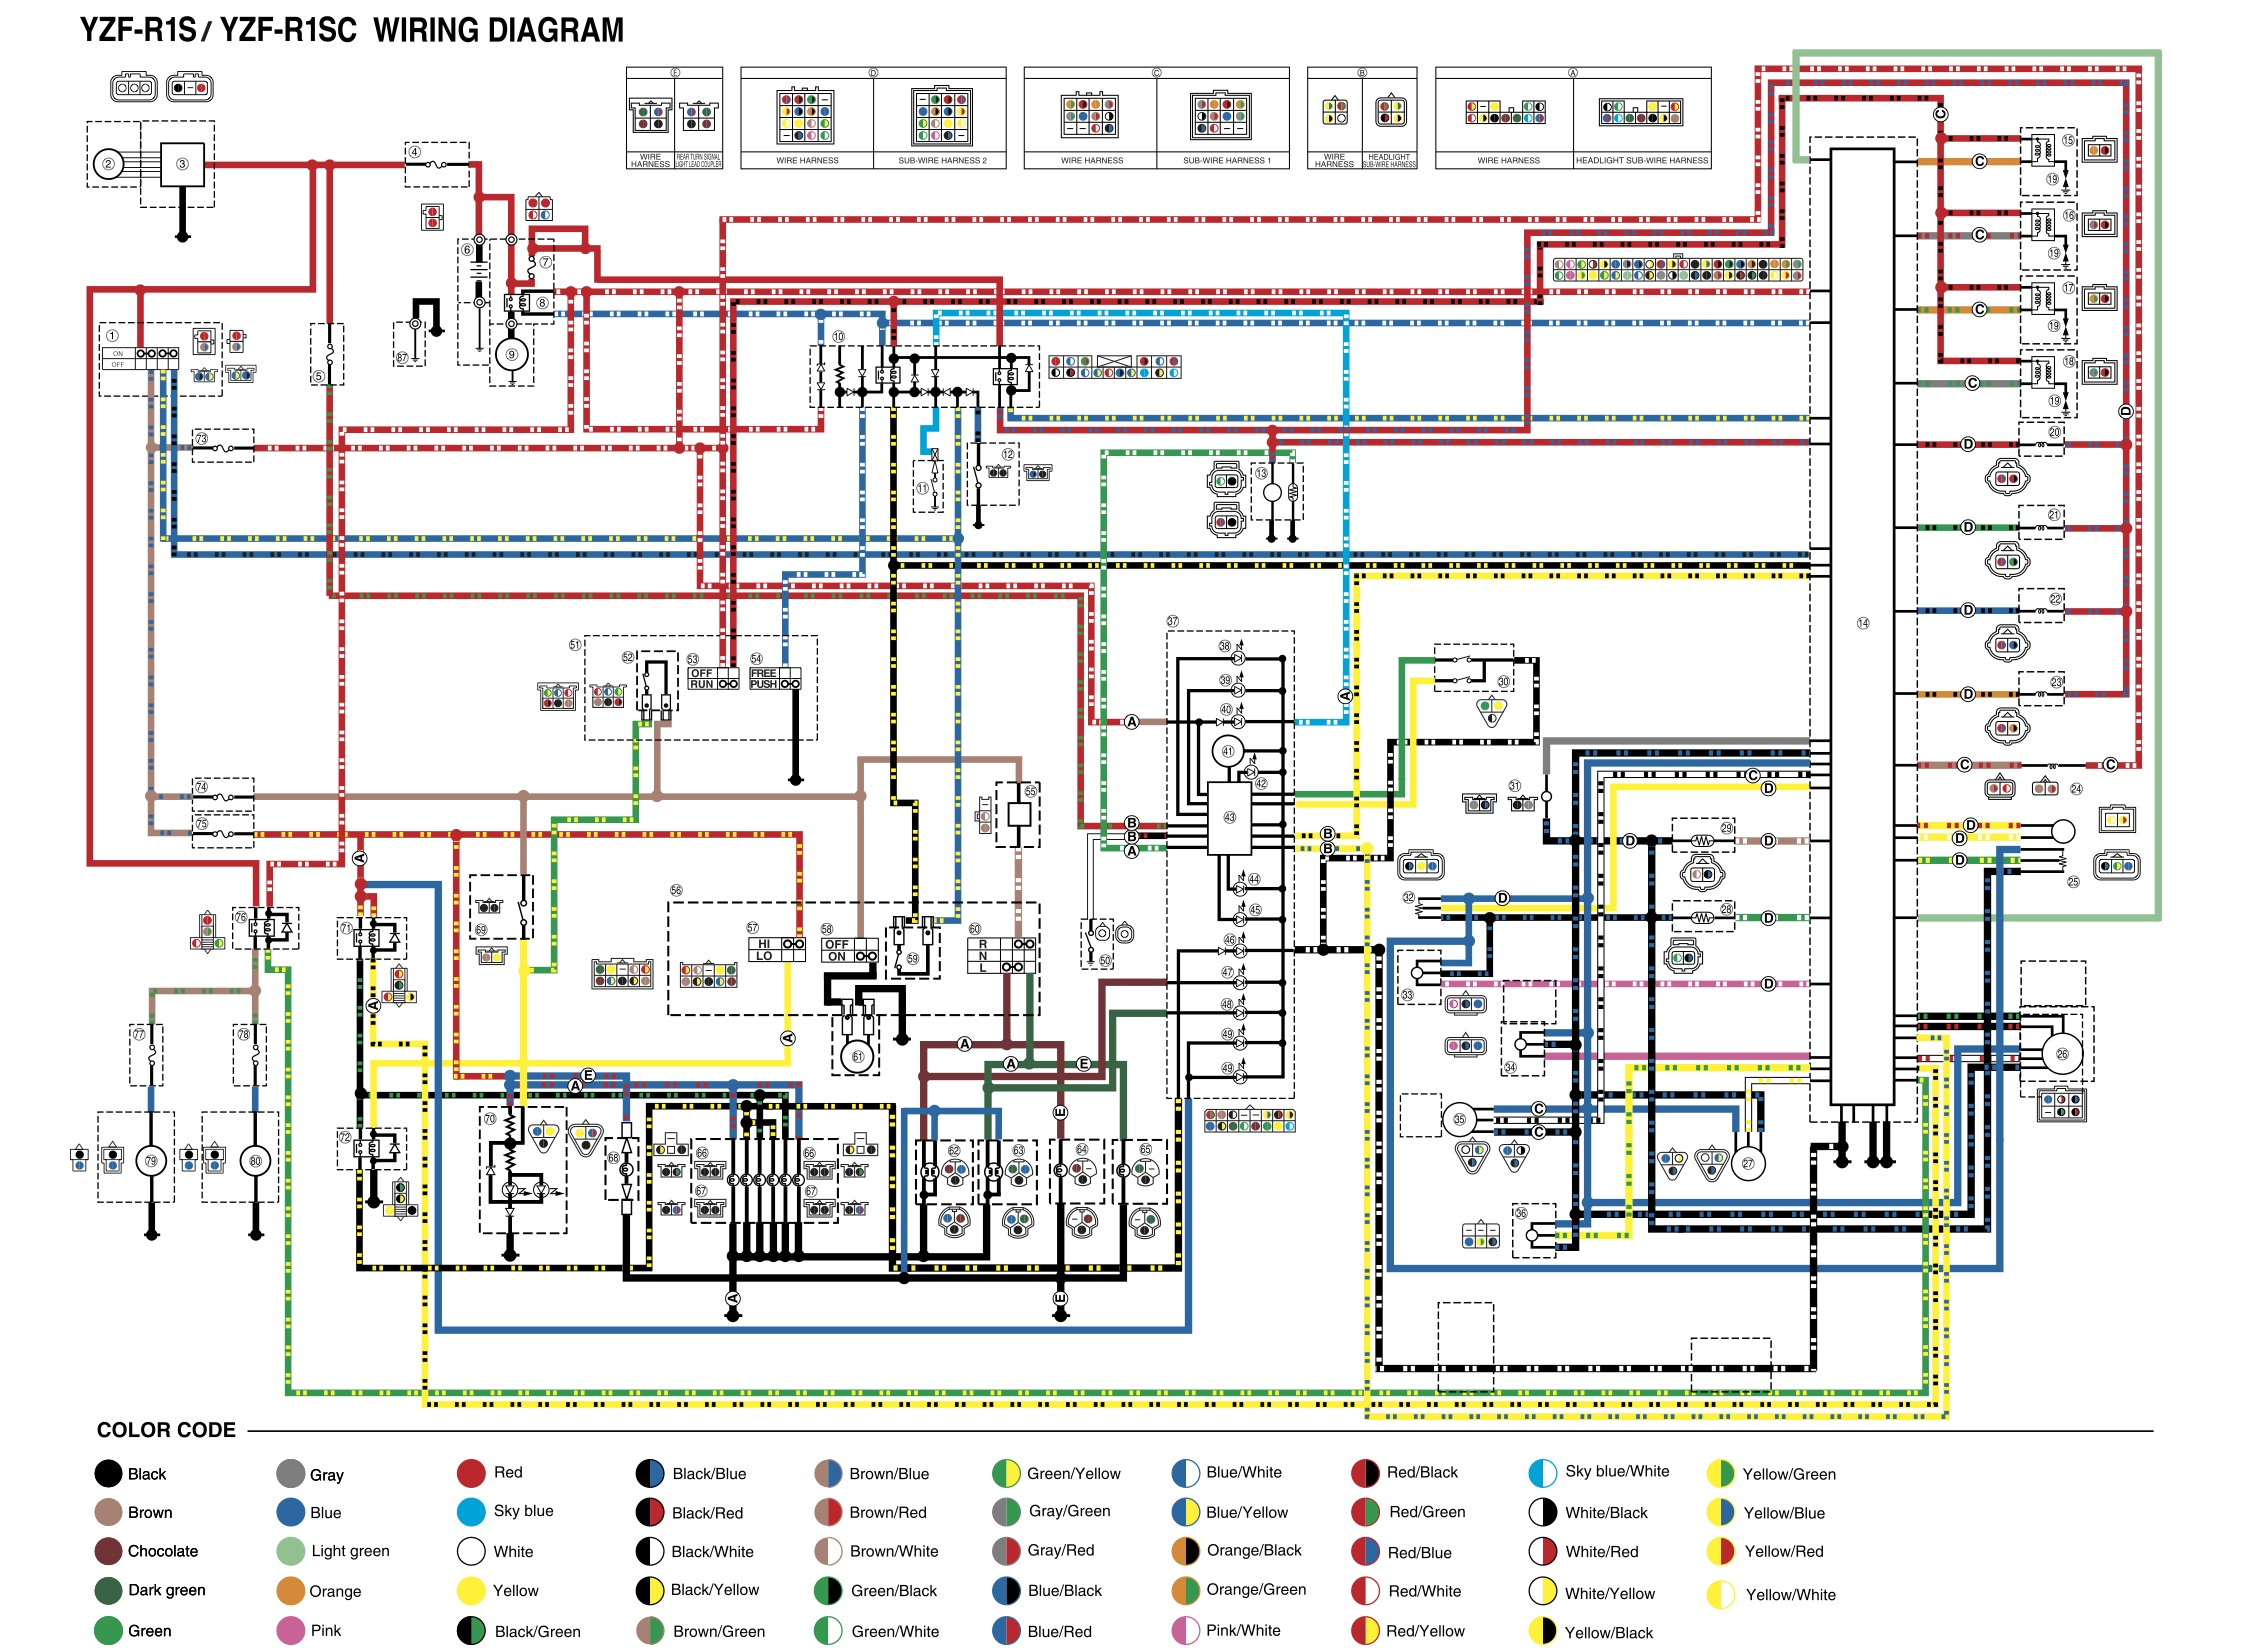 04R1_wiring_diagram 2004 yamaha rhino 660 ignition wiring diagram yamaha wiring 2004 yamaha rhino 660 wiring diagram at mifinder.co